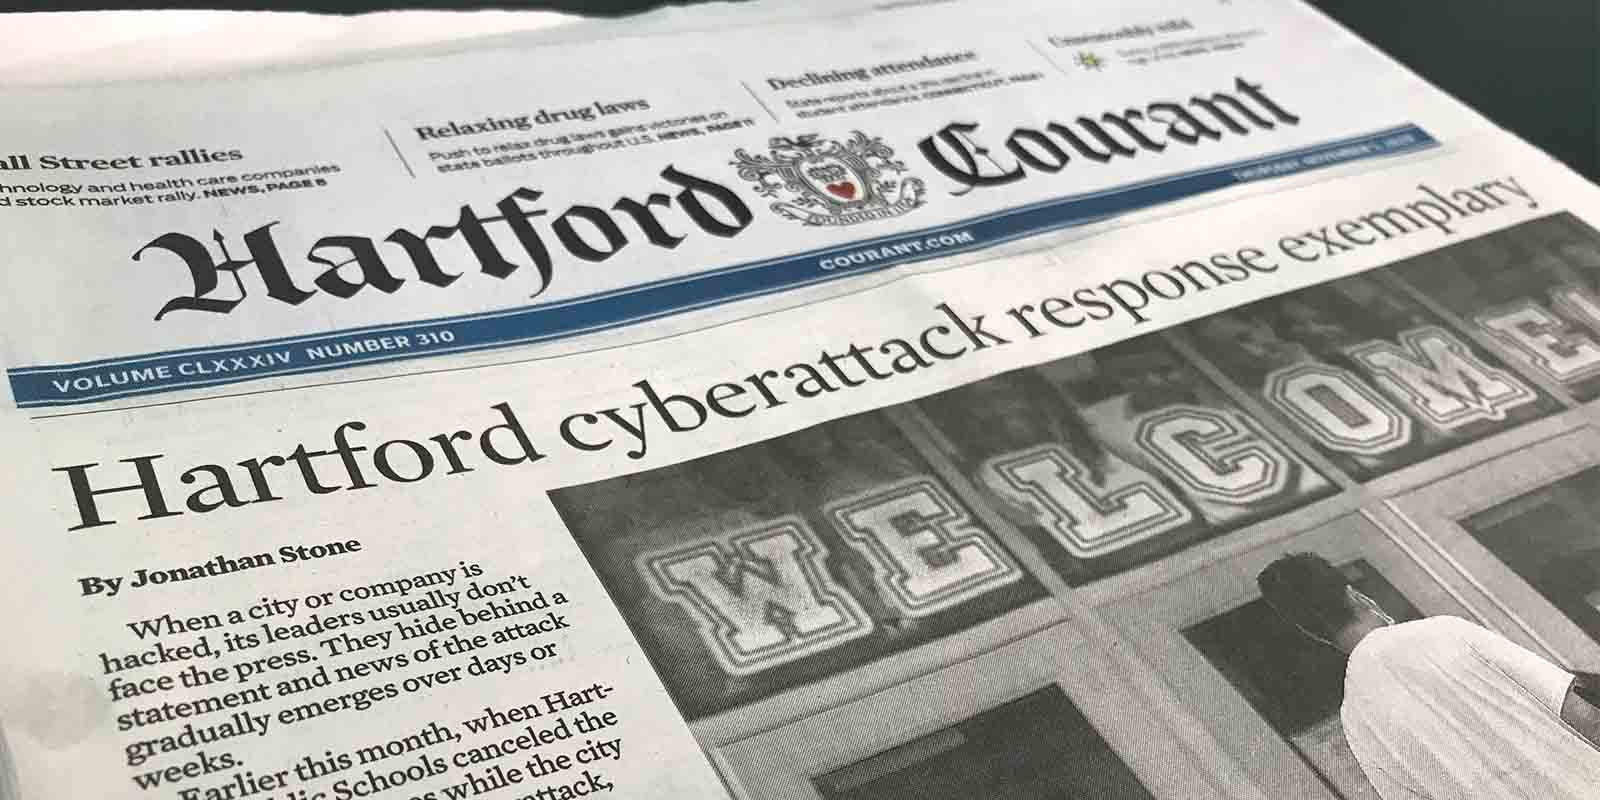 Hartford Nailed Cyber Resilience on the First Day of School